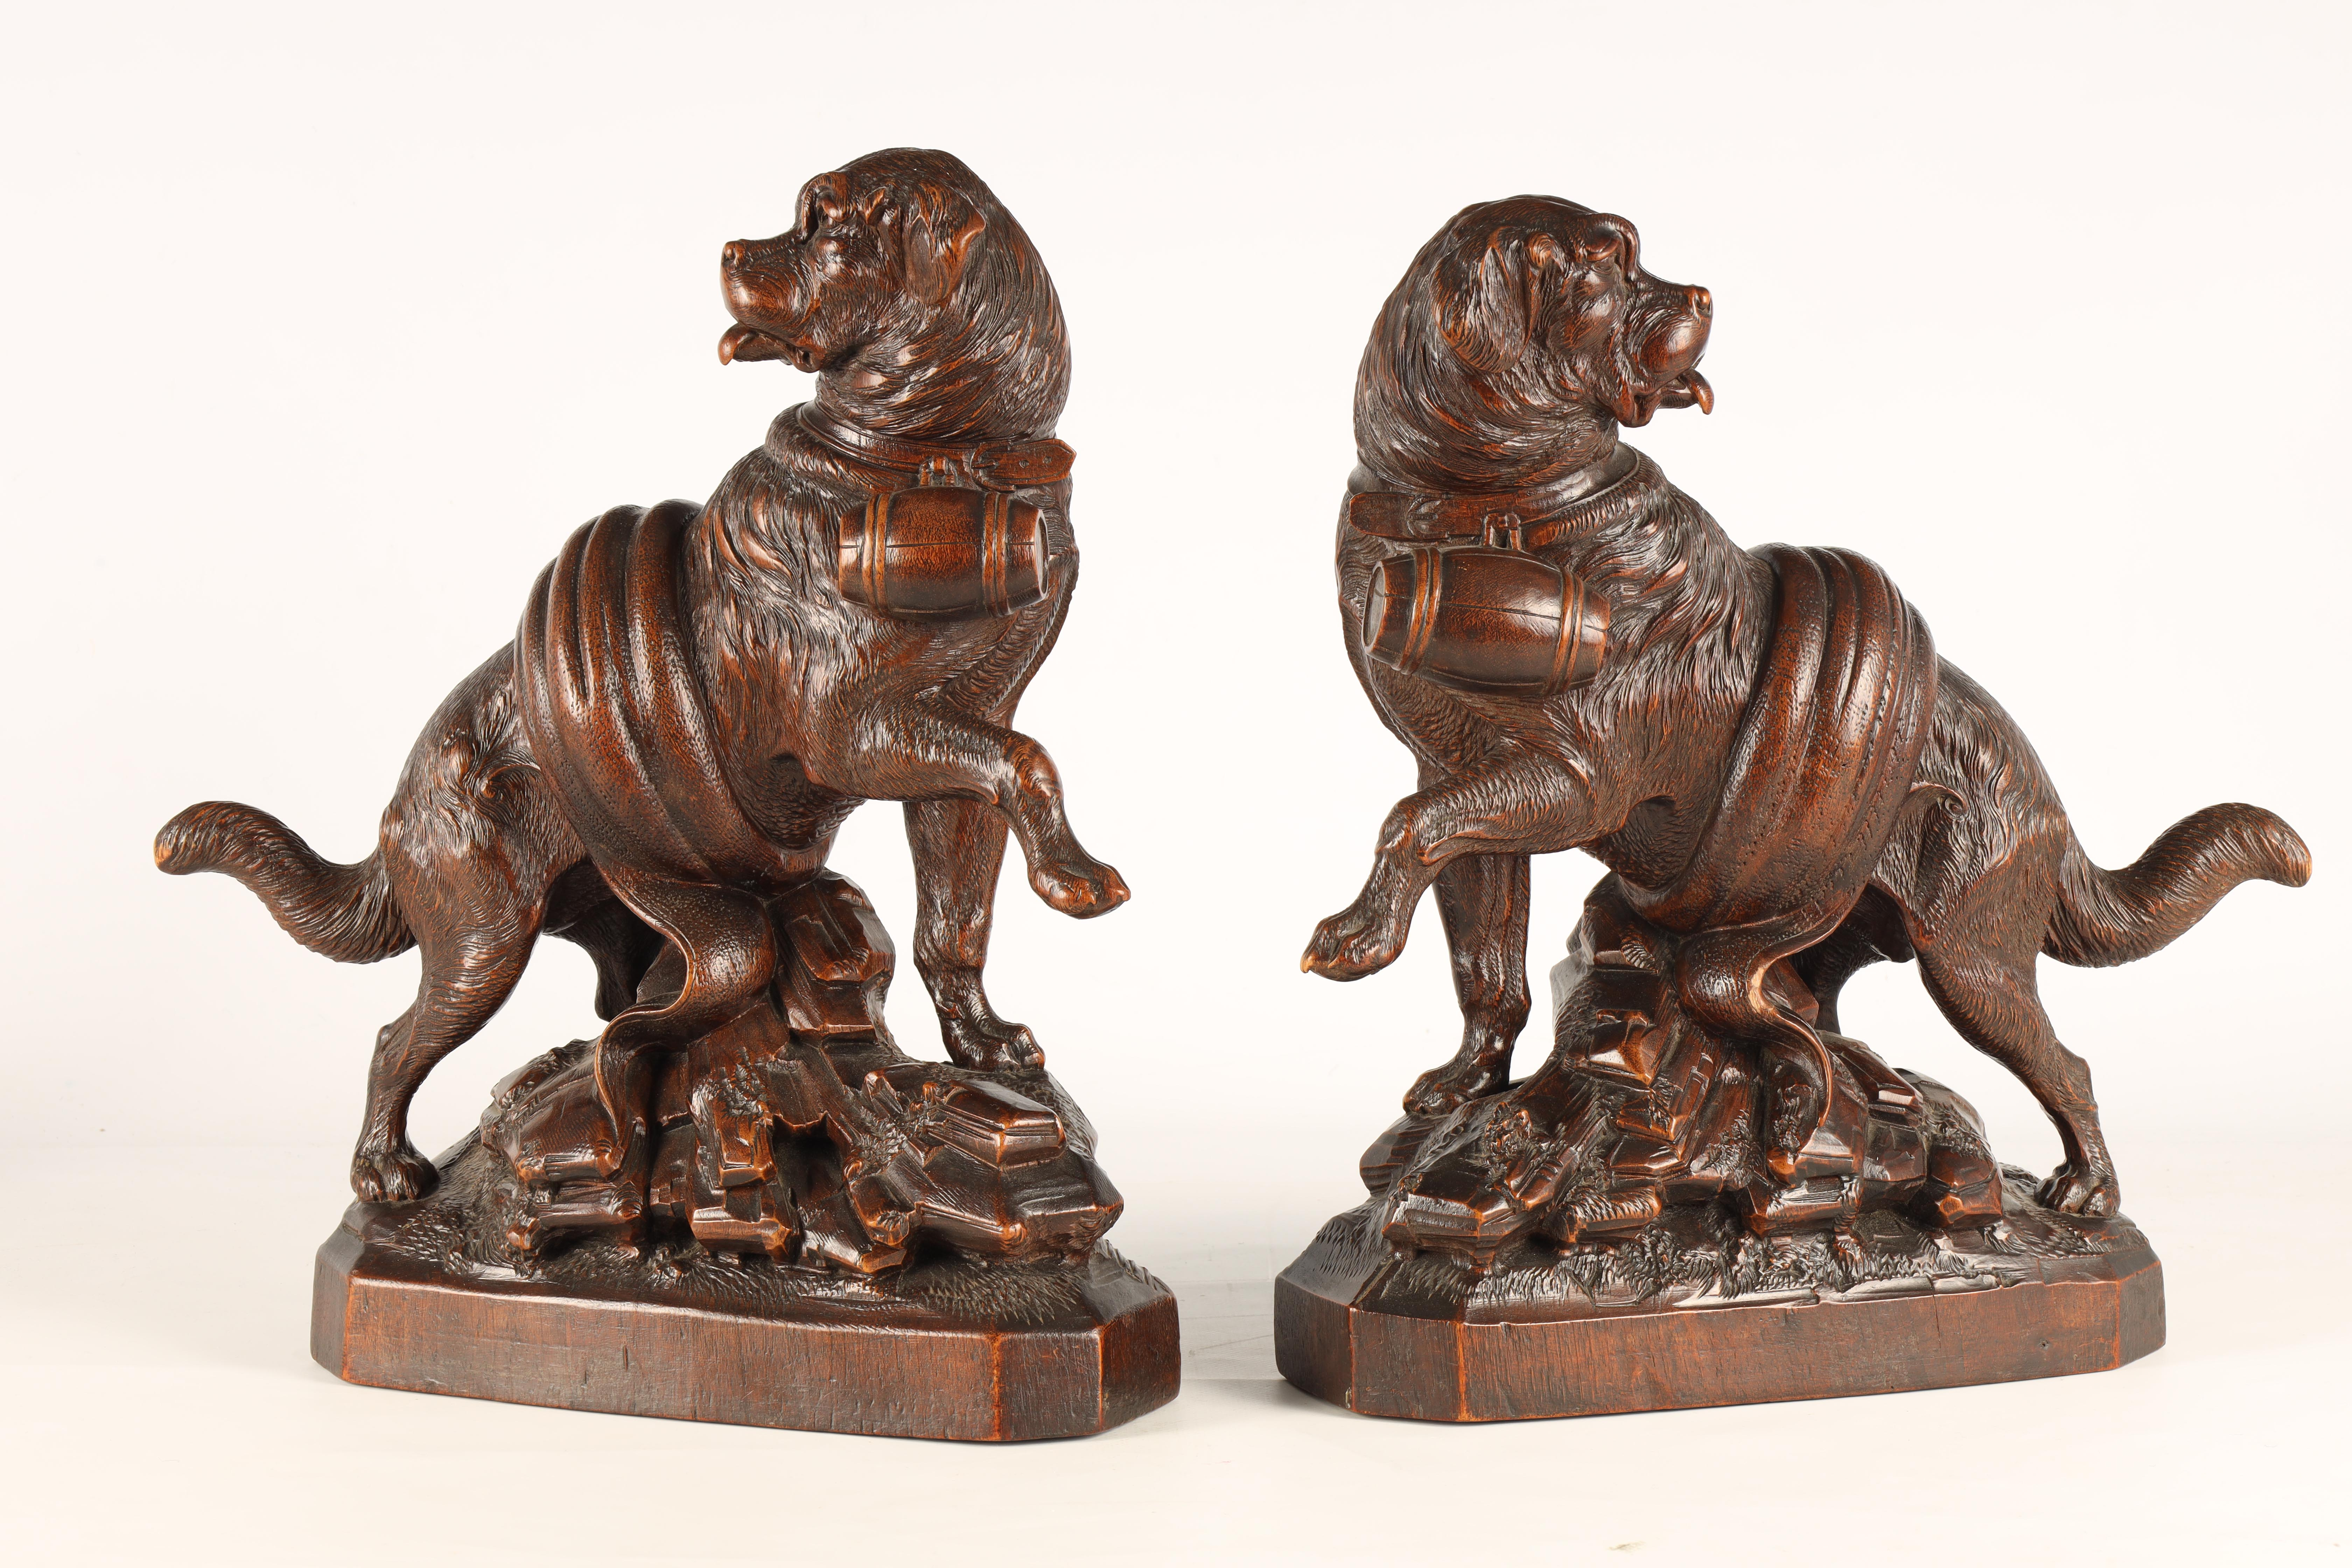 A GOOD QUALITY PAIR OF LATE 19TH CENTURY BLACK FOREST CARVED SCULPTURES modelled as Saint Bernards - Image 2 of 6